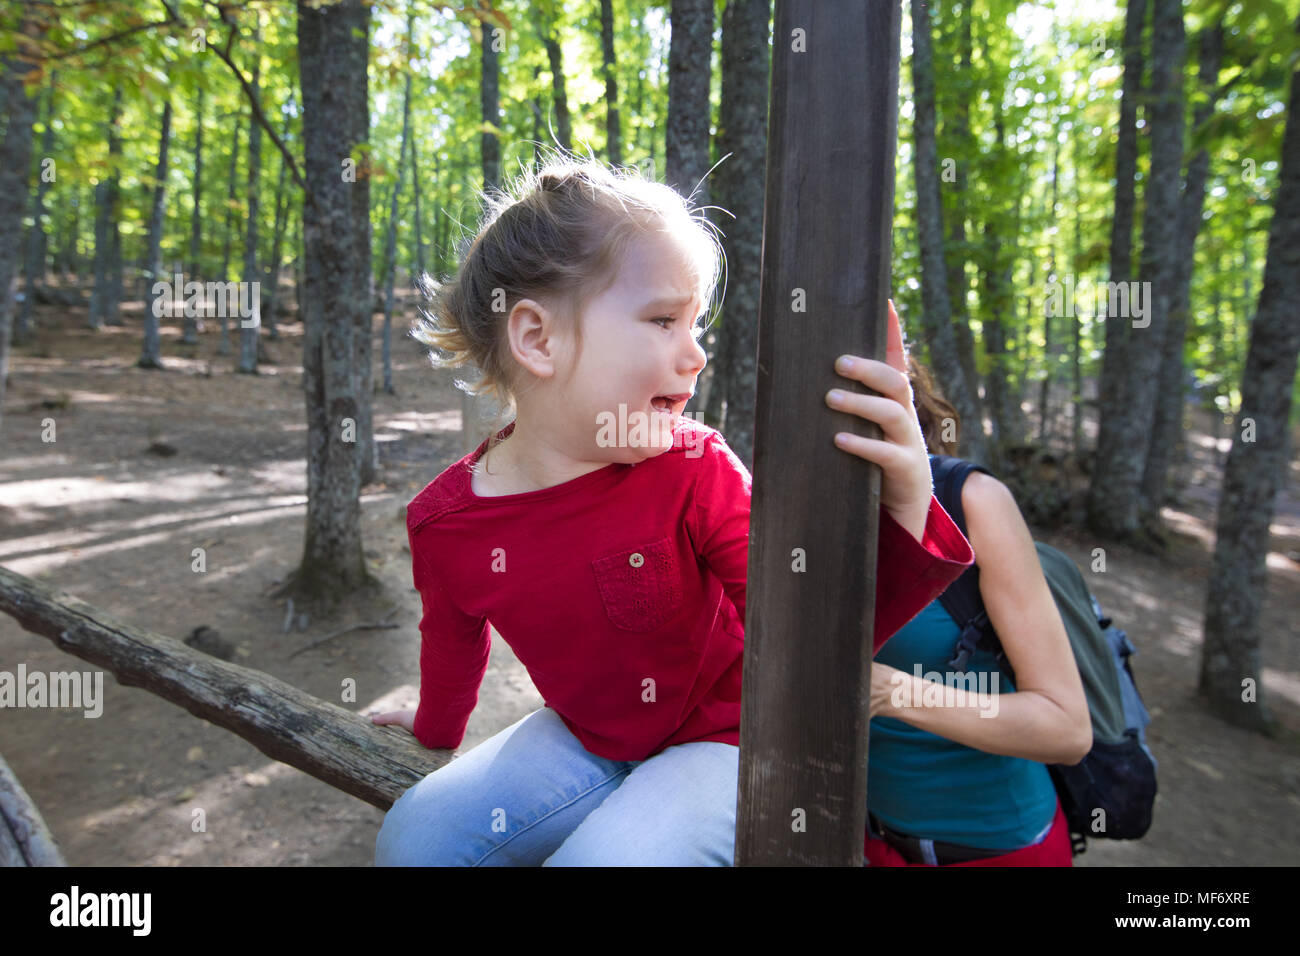 four years age blonde child with red shirt sitting on wooden fence, looking back and screaming with scary face to mother, in forest of chestnut trees  - Stock Image